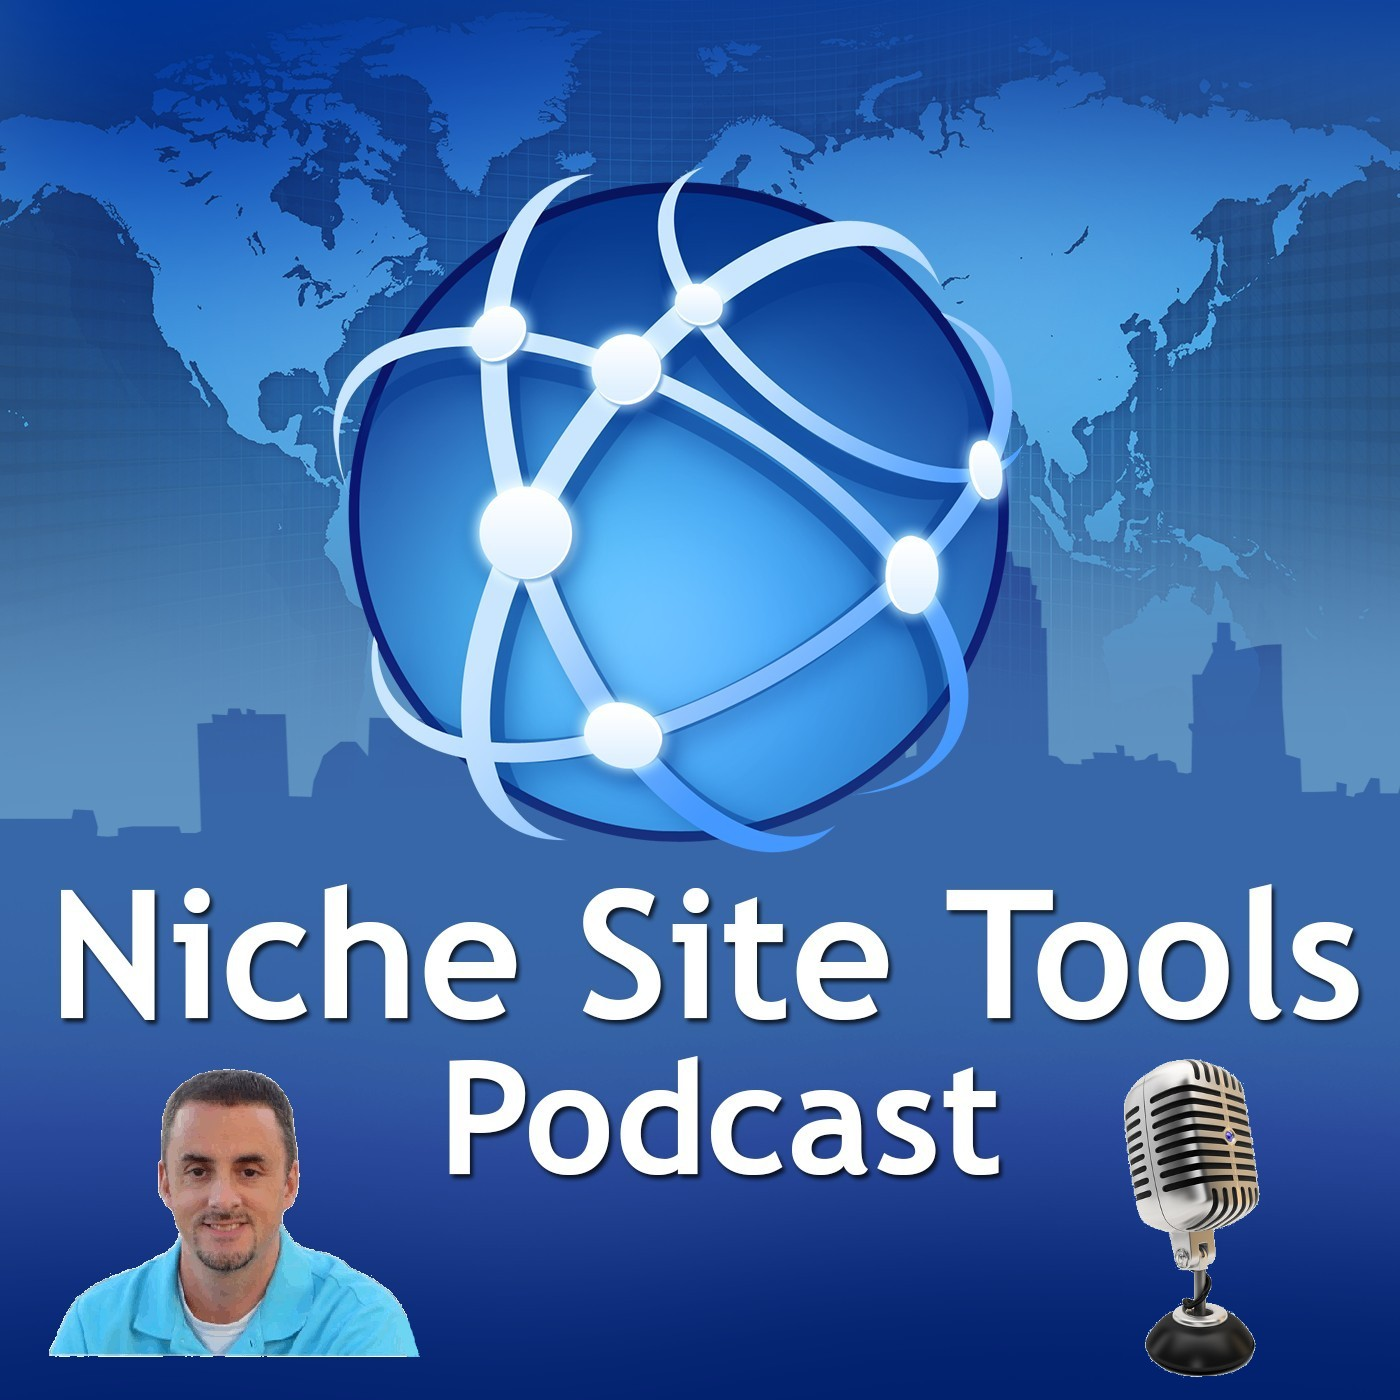 The Niche Site Tools Podcast